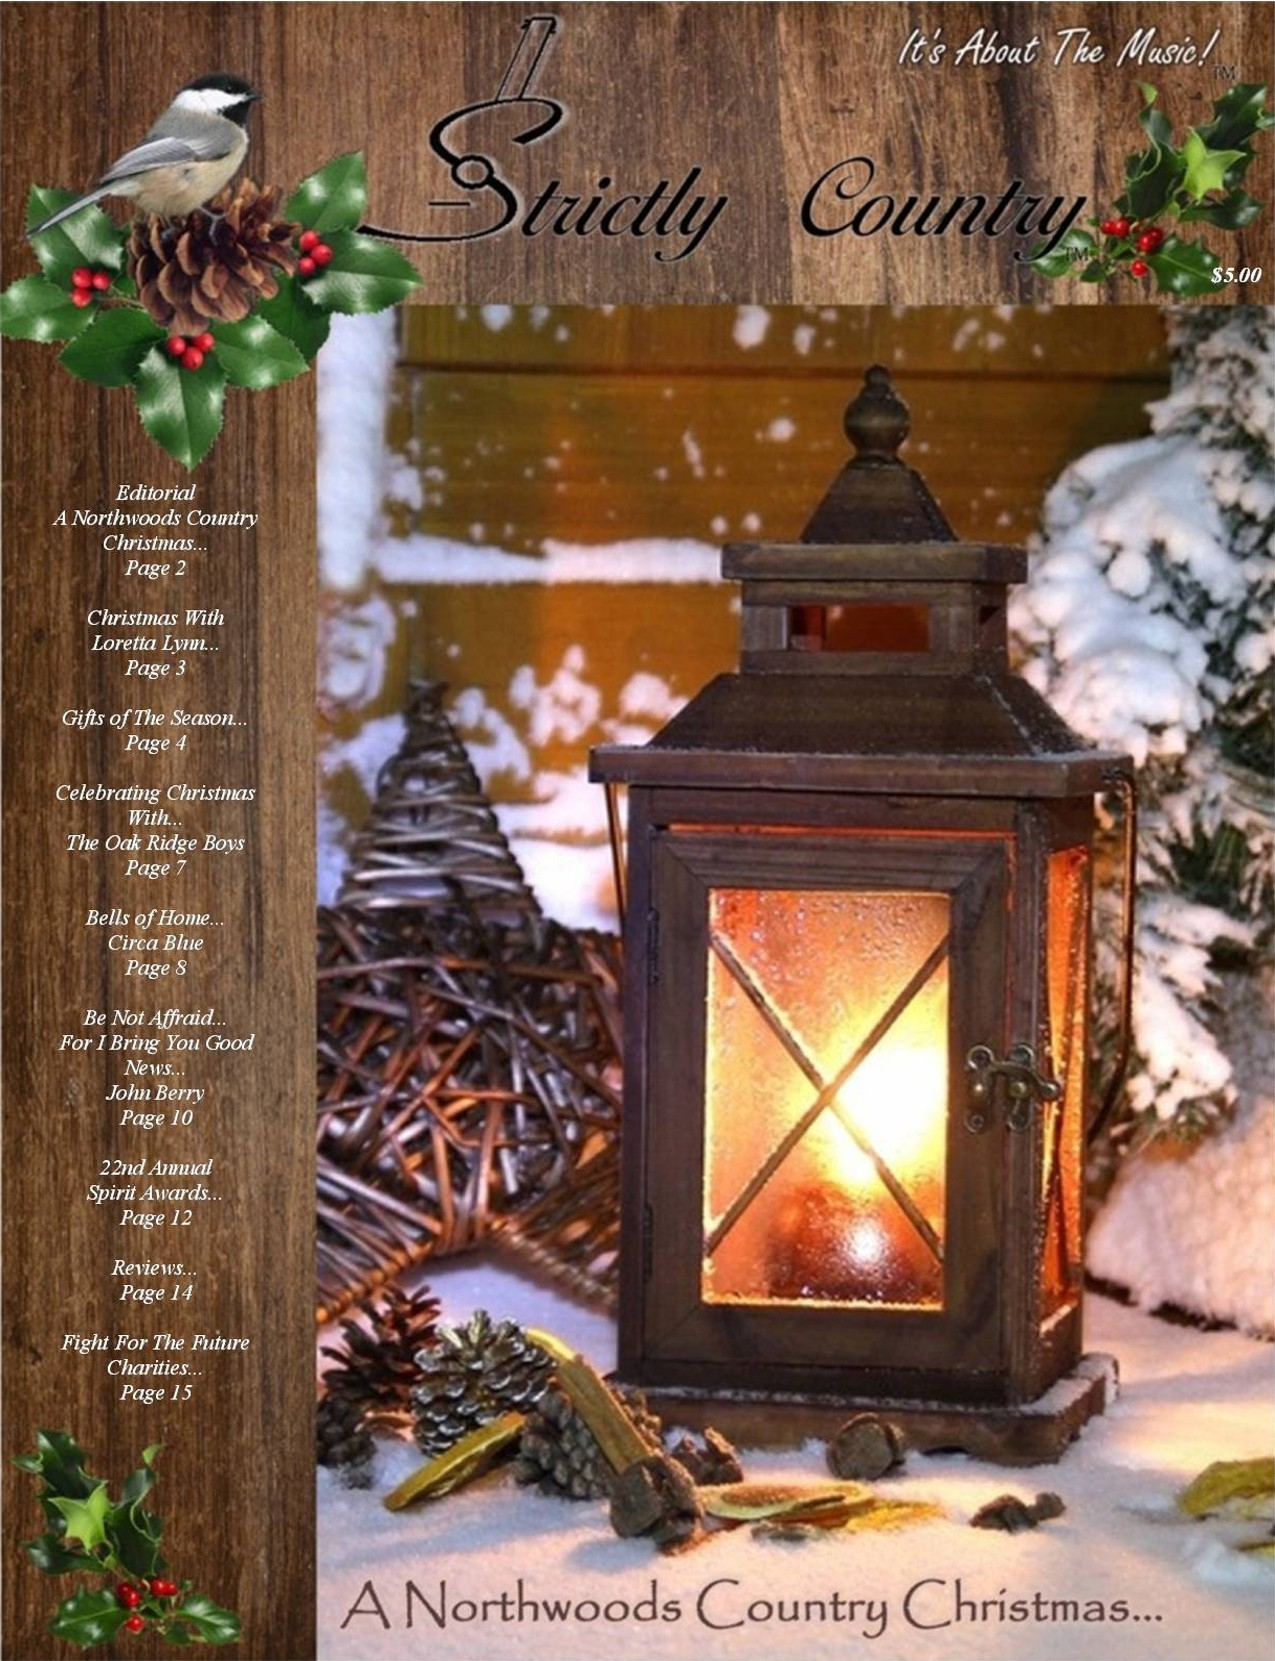 Strictly Country Magazine - Volume 23 Issue 6